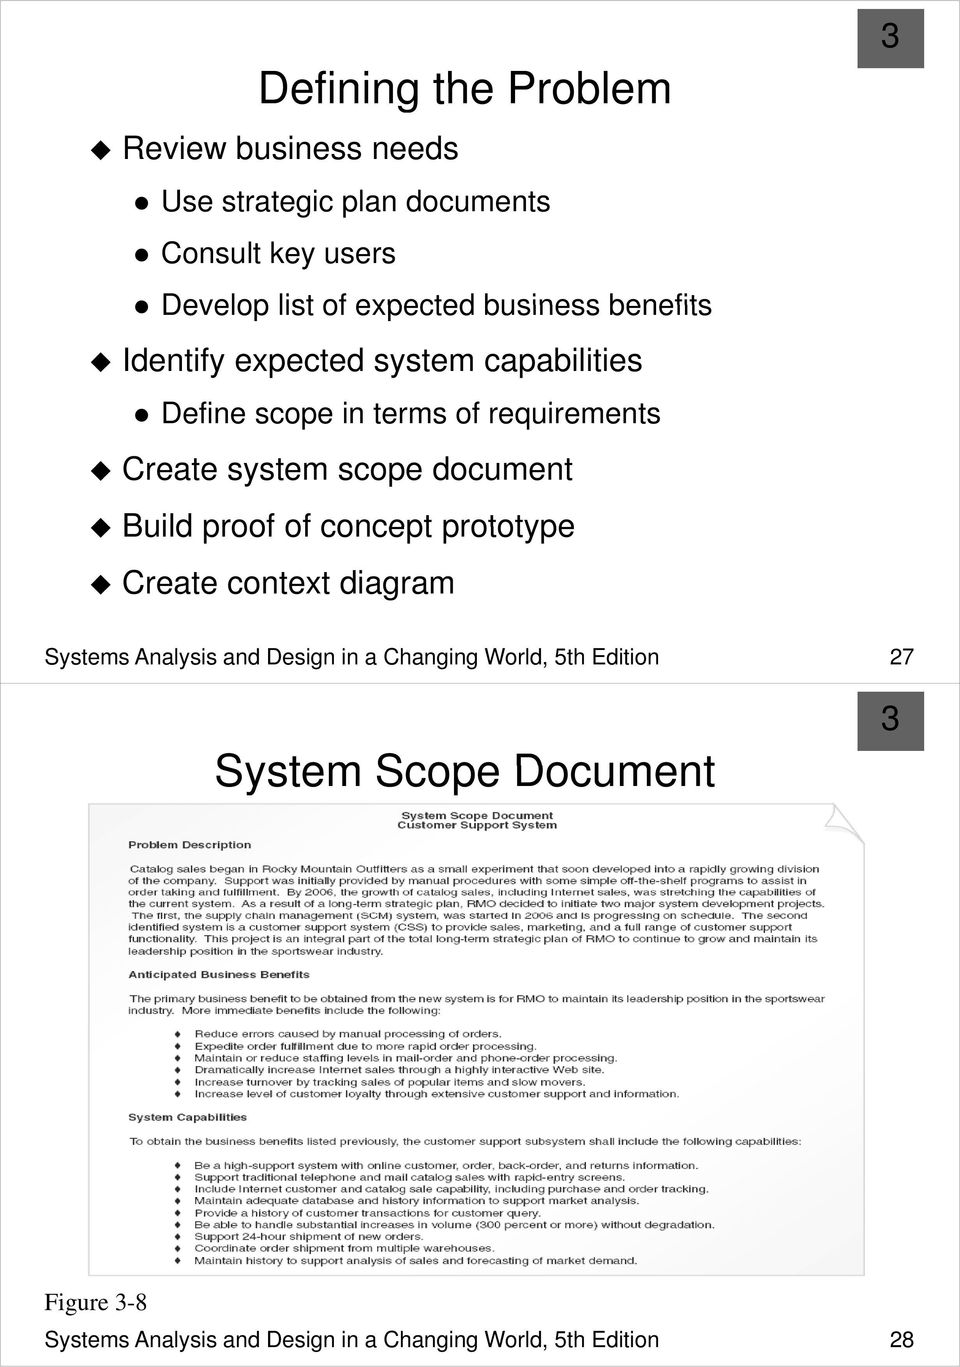 system scope document Build proof of concept prototype Create context diagram Systems Analysis and Design in a